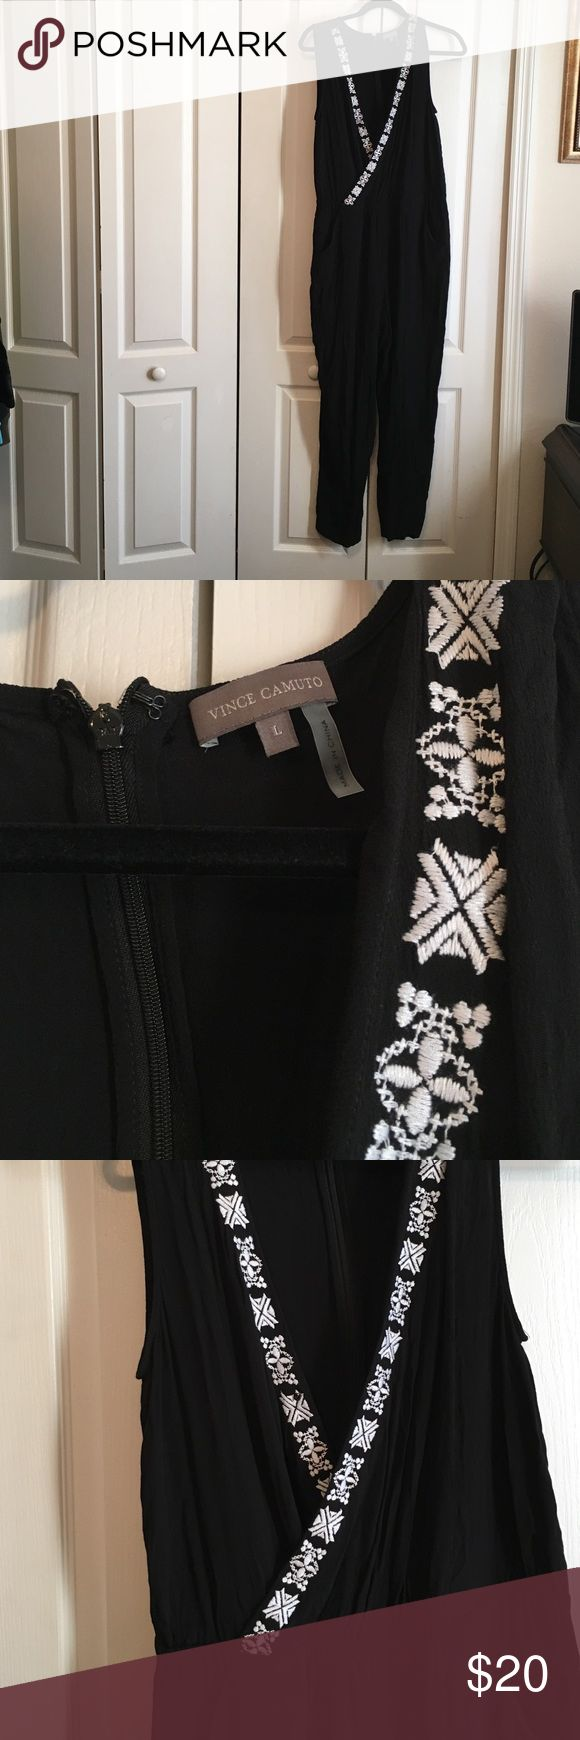 Vince Camuto Ladies Size Large Jumpsuit Gently Used Ladies Jumpsuit Size Large Vince Camuto Pants Jumpsuits & Rompers